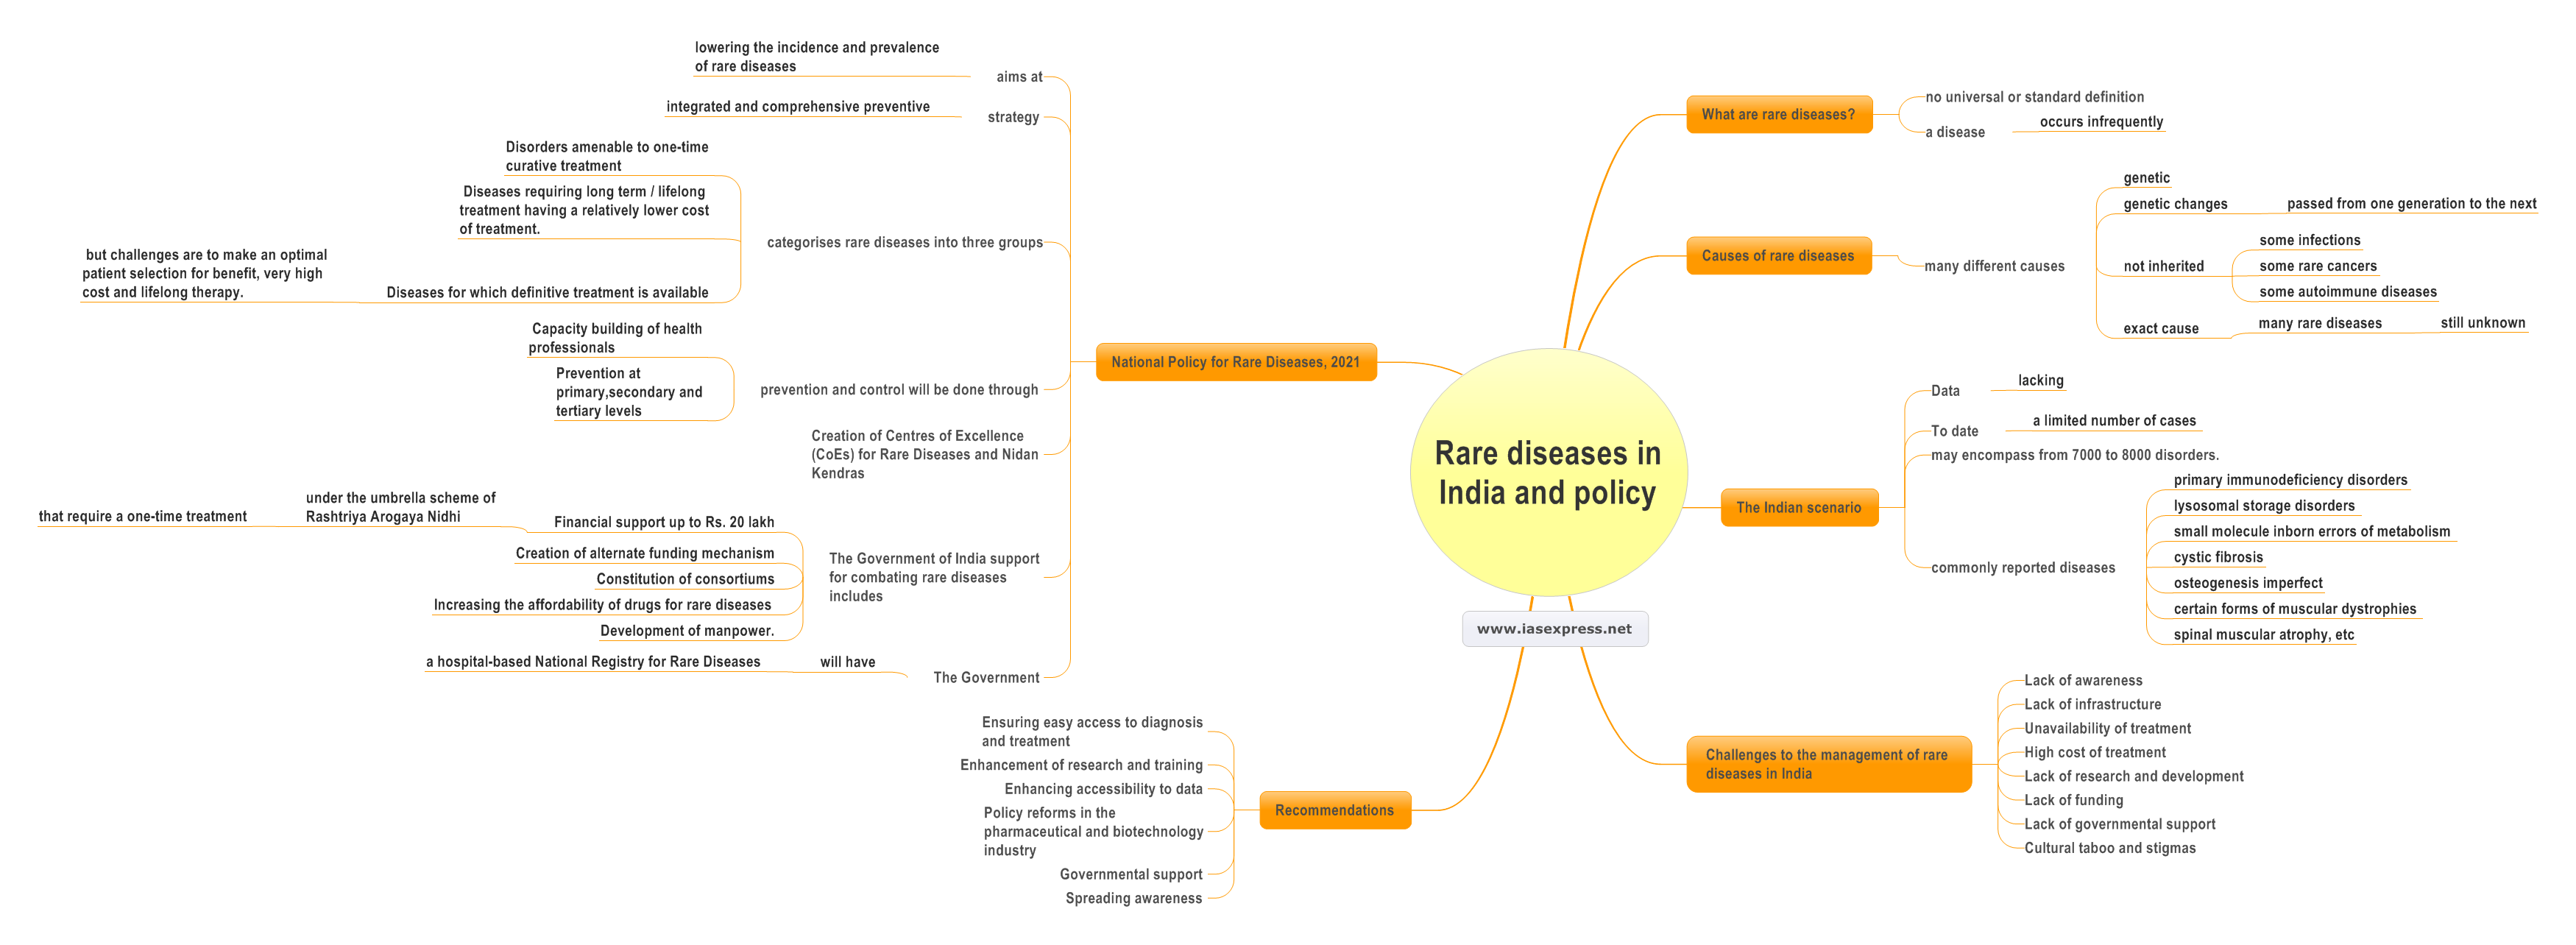 Rare-diseases-in-India-and-policy.mindmap